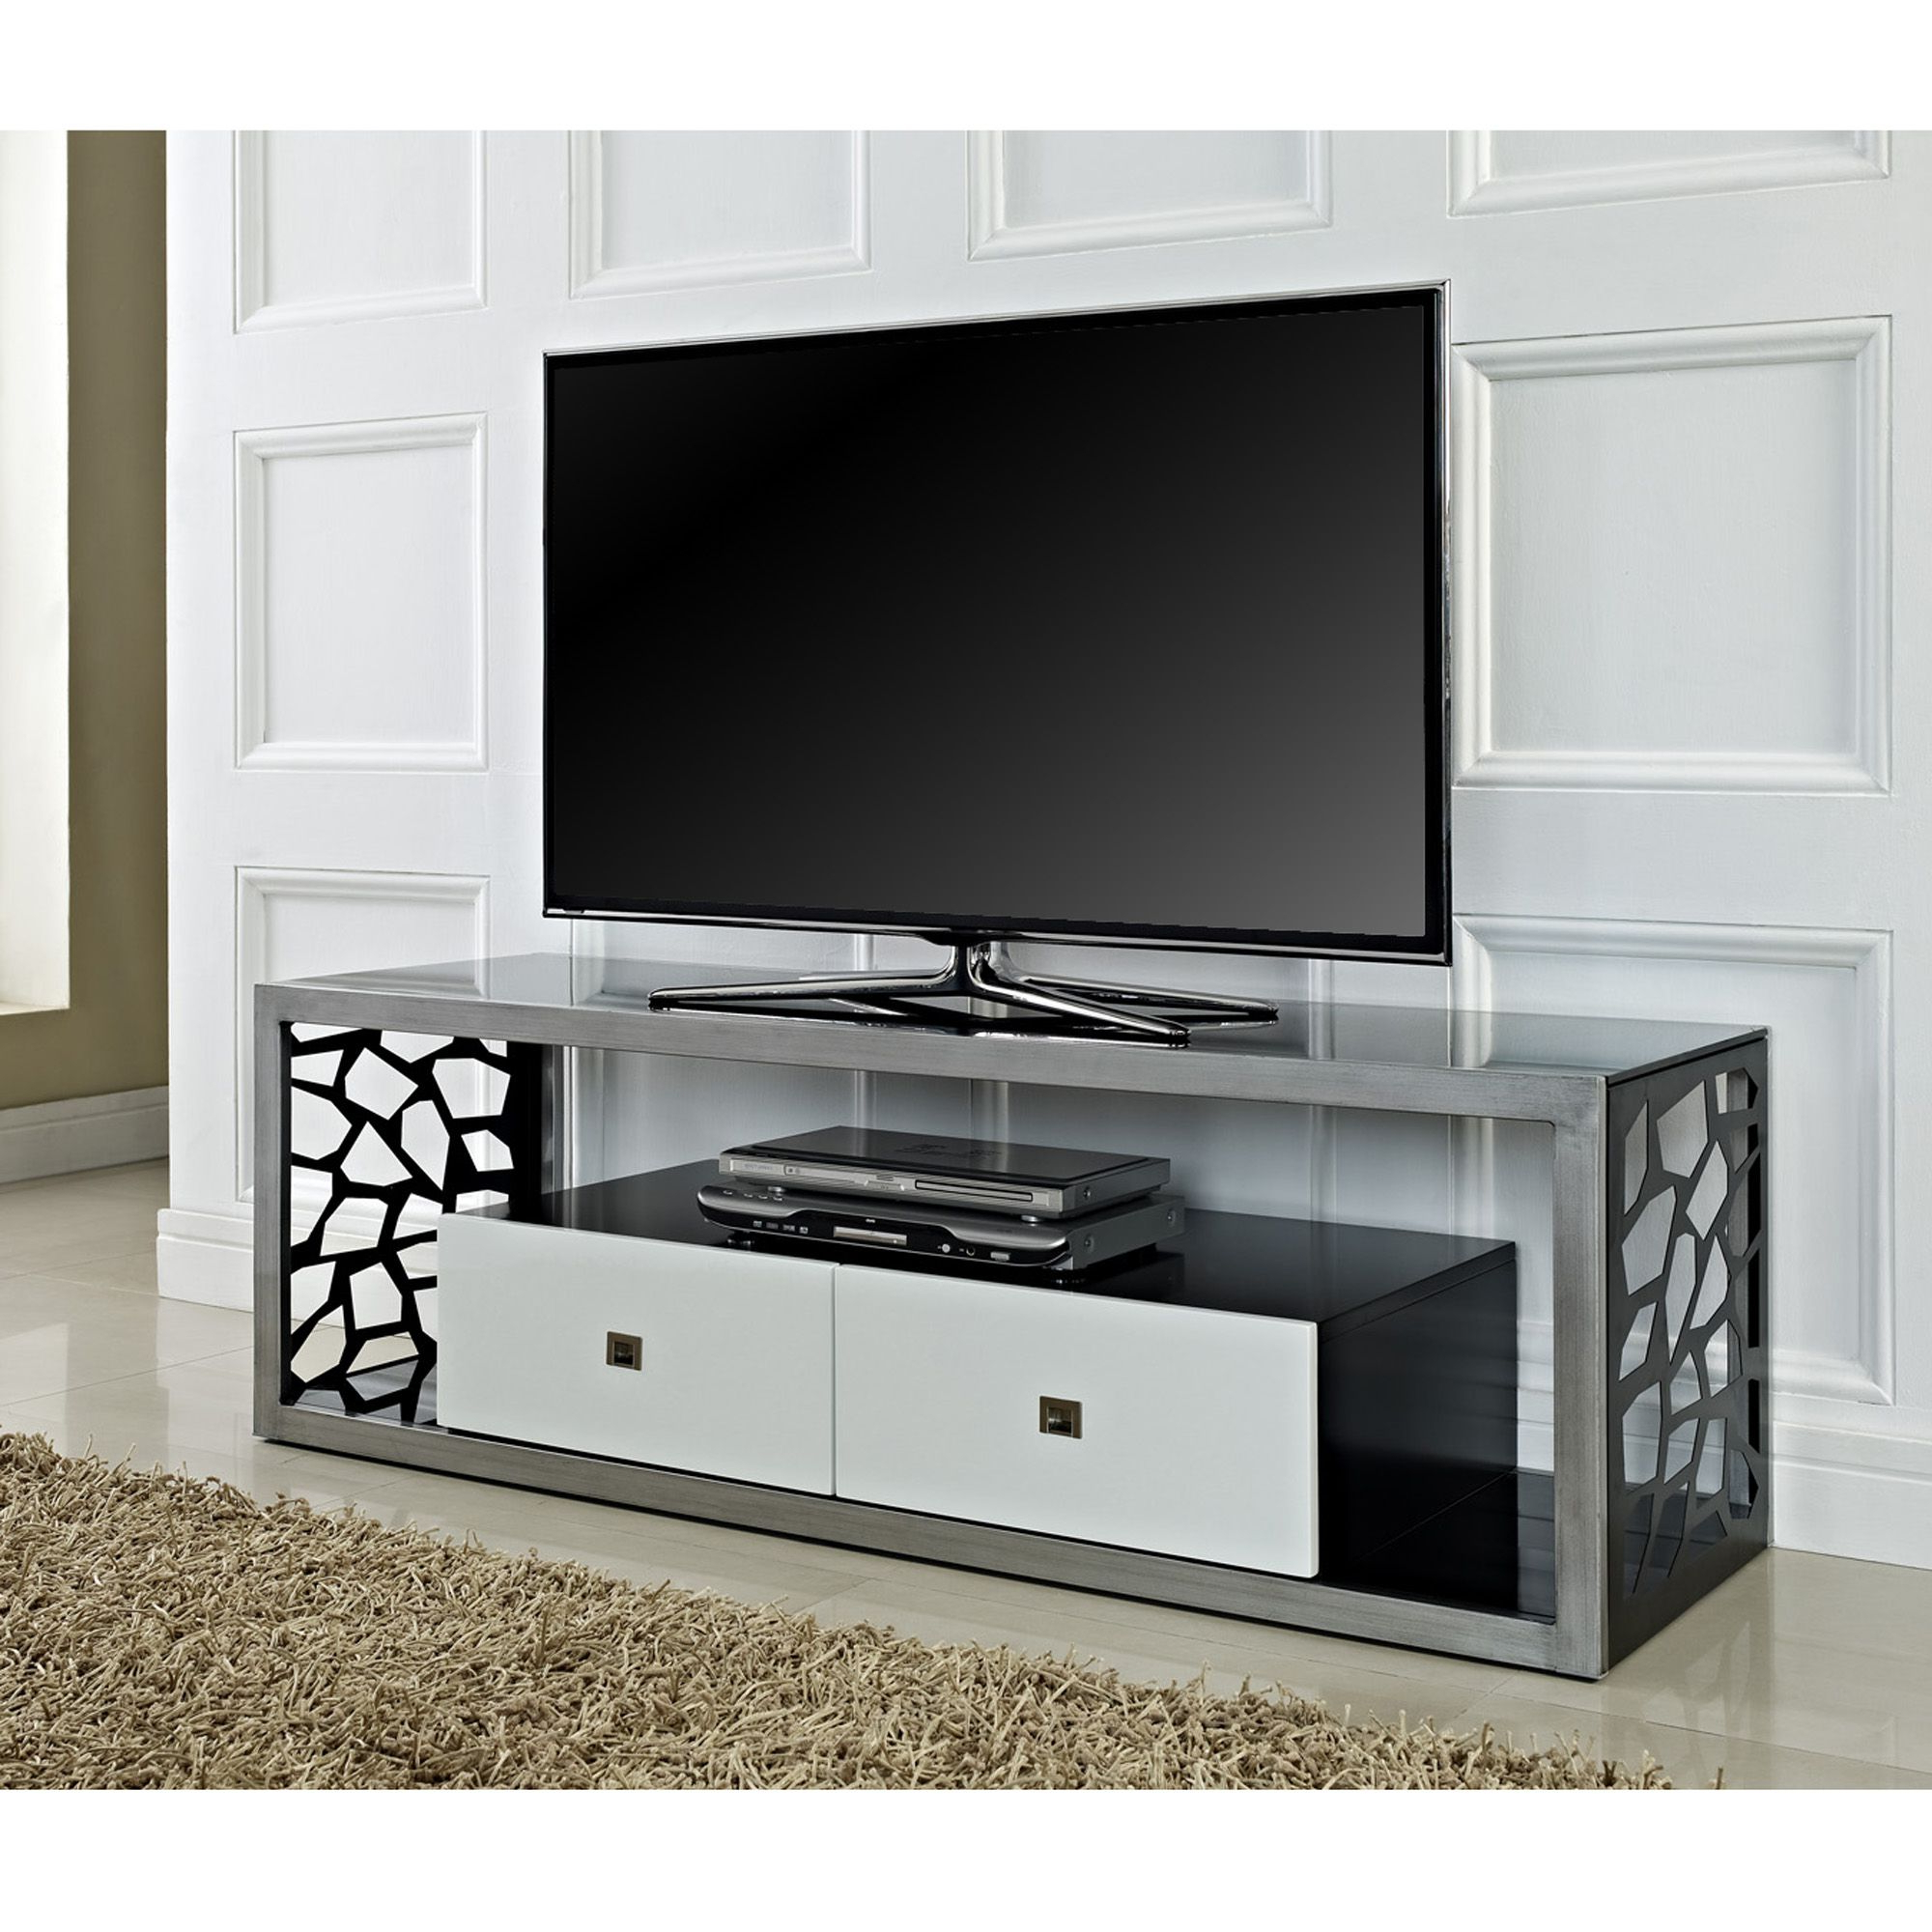 """Most Recent Rowan 45 Inch Tv Stands Within Beautiful 60"""" Mosaic Tv Stand, Brushed Silver Frame With White (View 2 of 20)"""